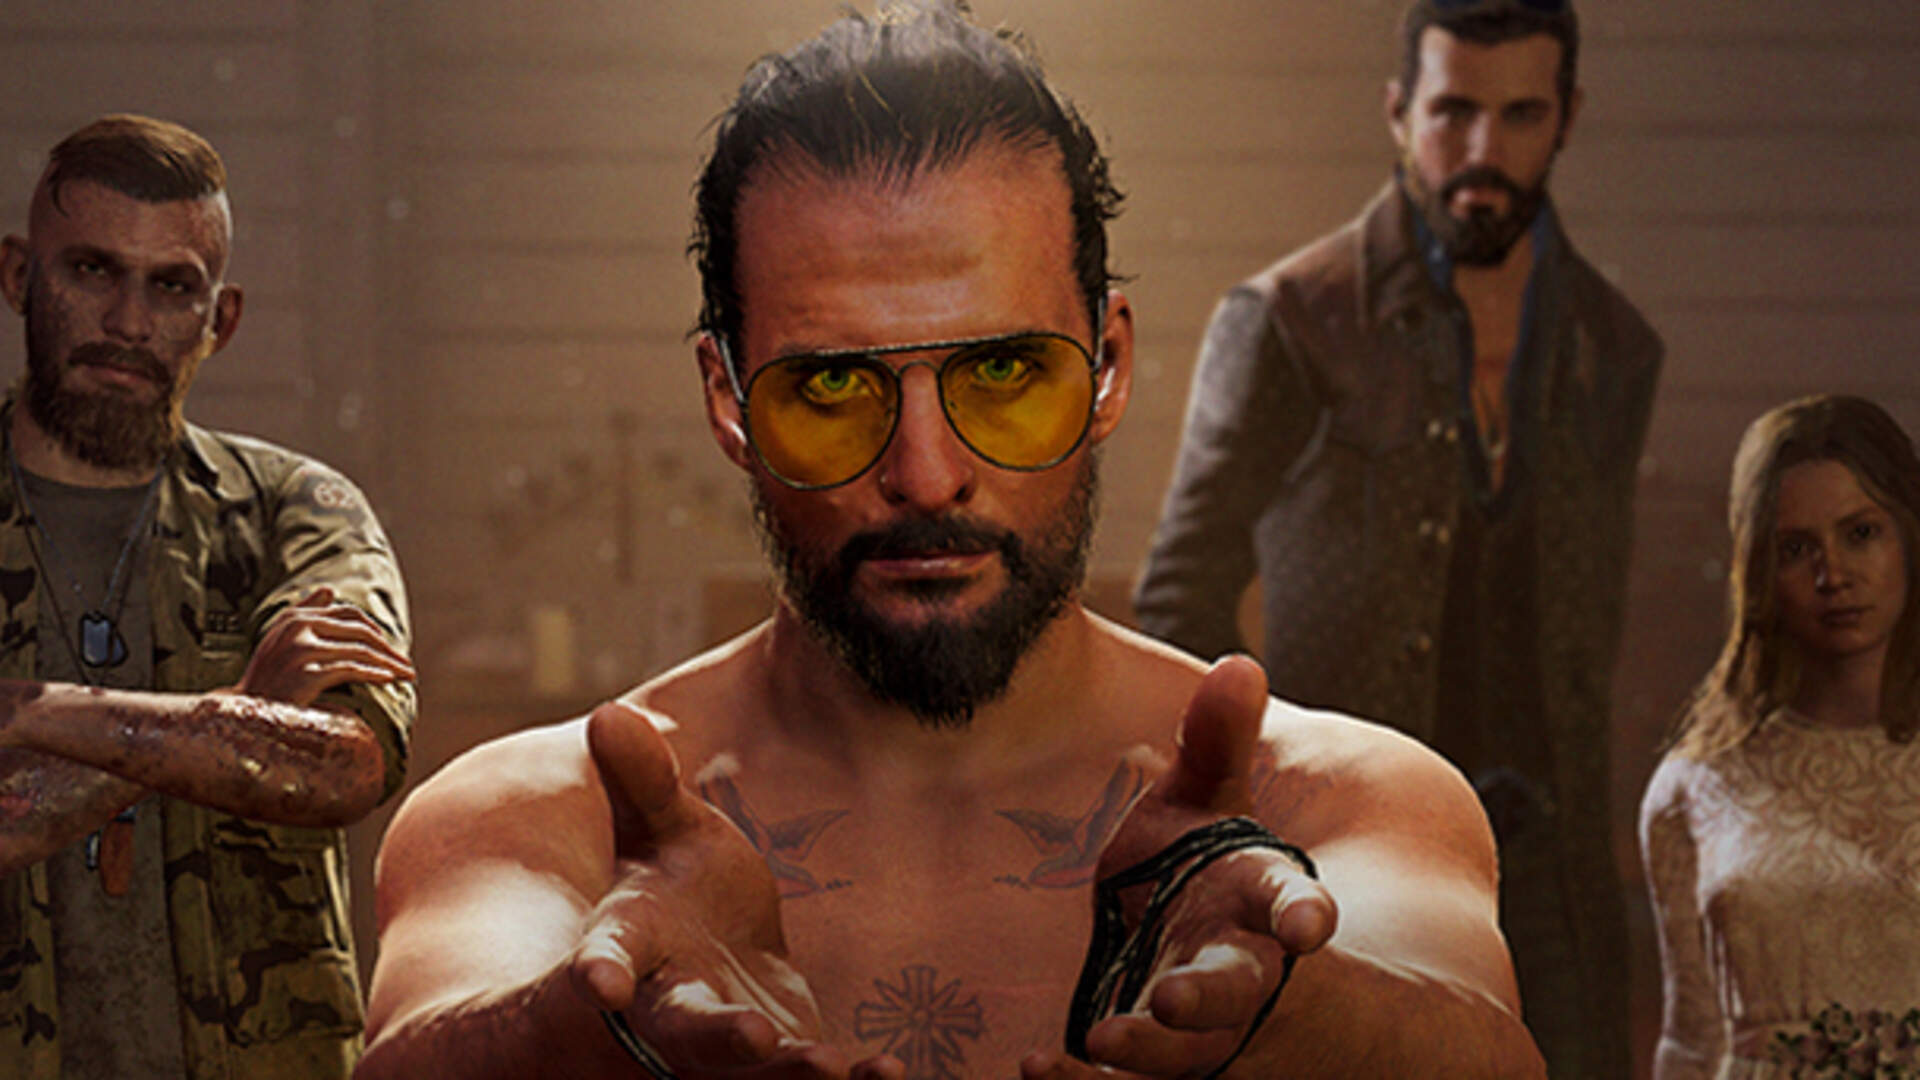 Far Cry 5 Final Check-In: How We're Feeling After Several Hours of Gameplay